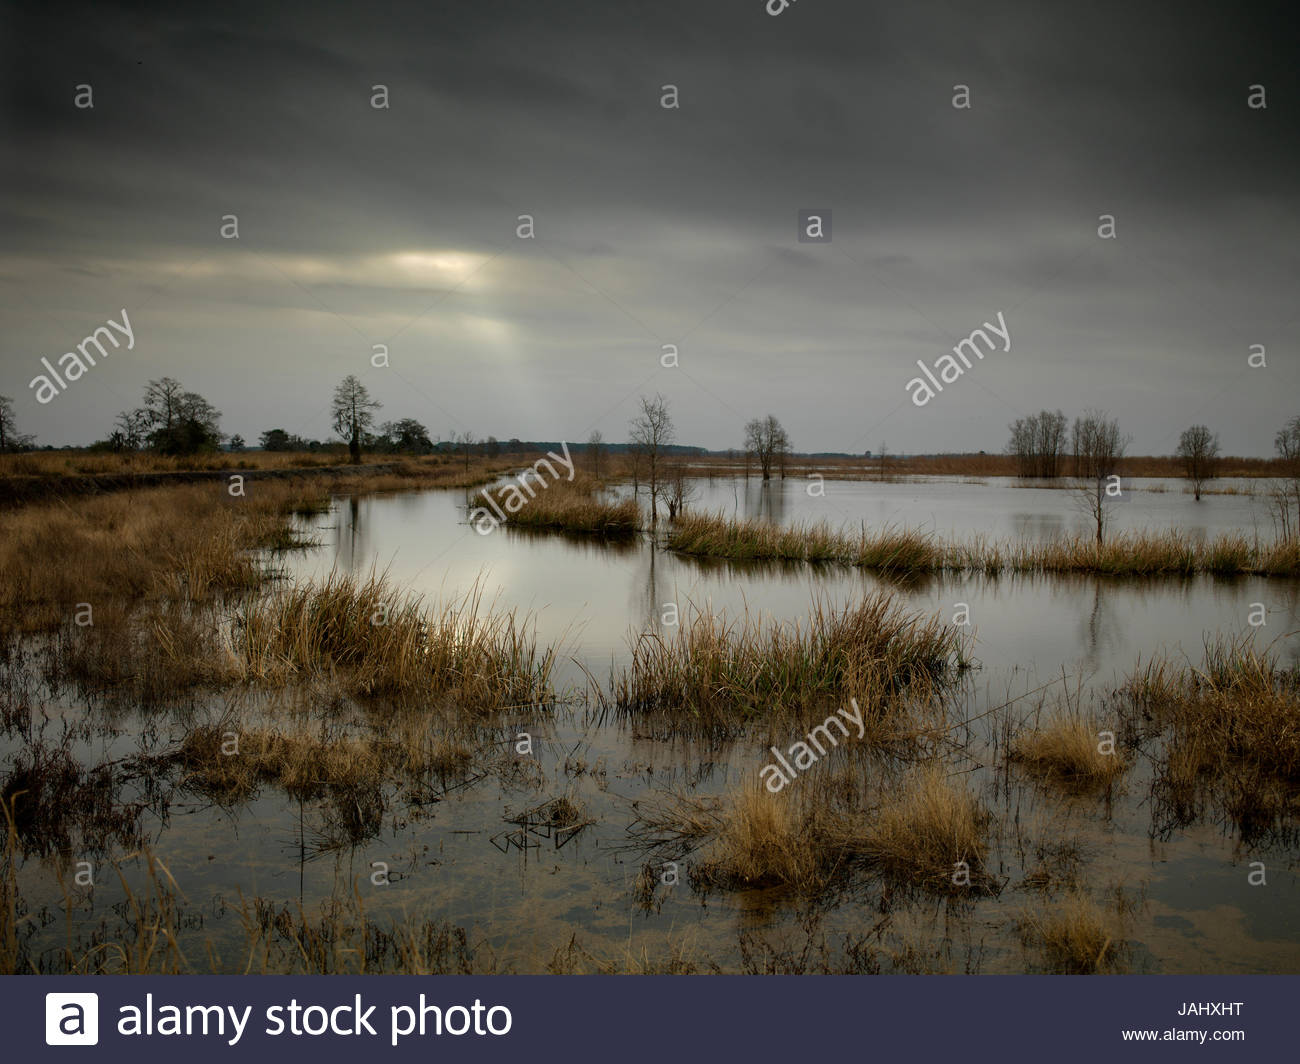 Wetland for waterfowl. - Stock Image